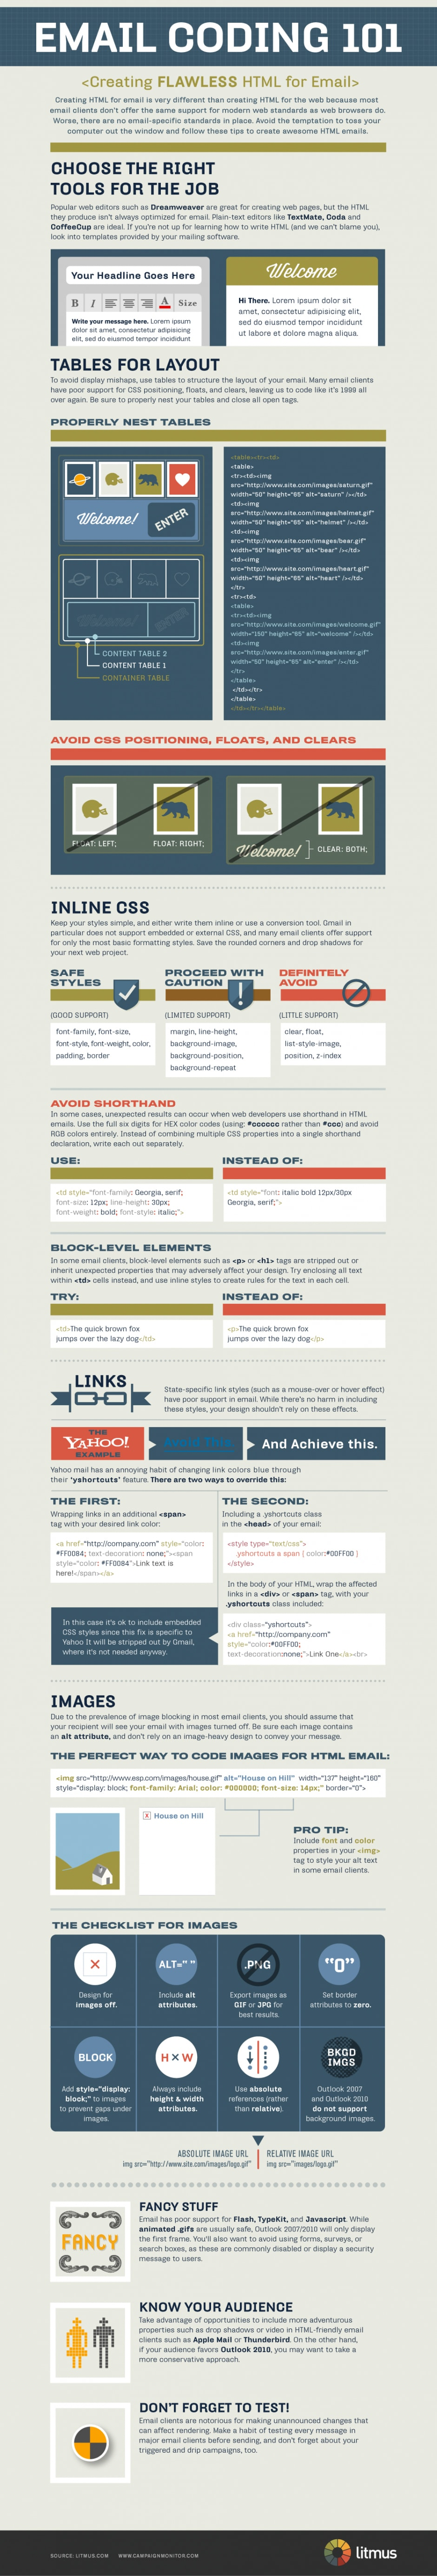 HTML-Email-Code-Infographic